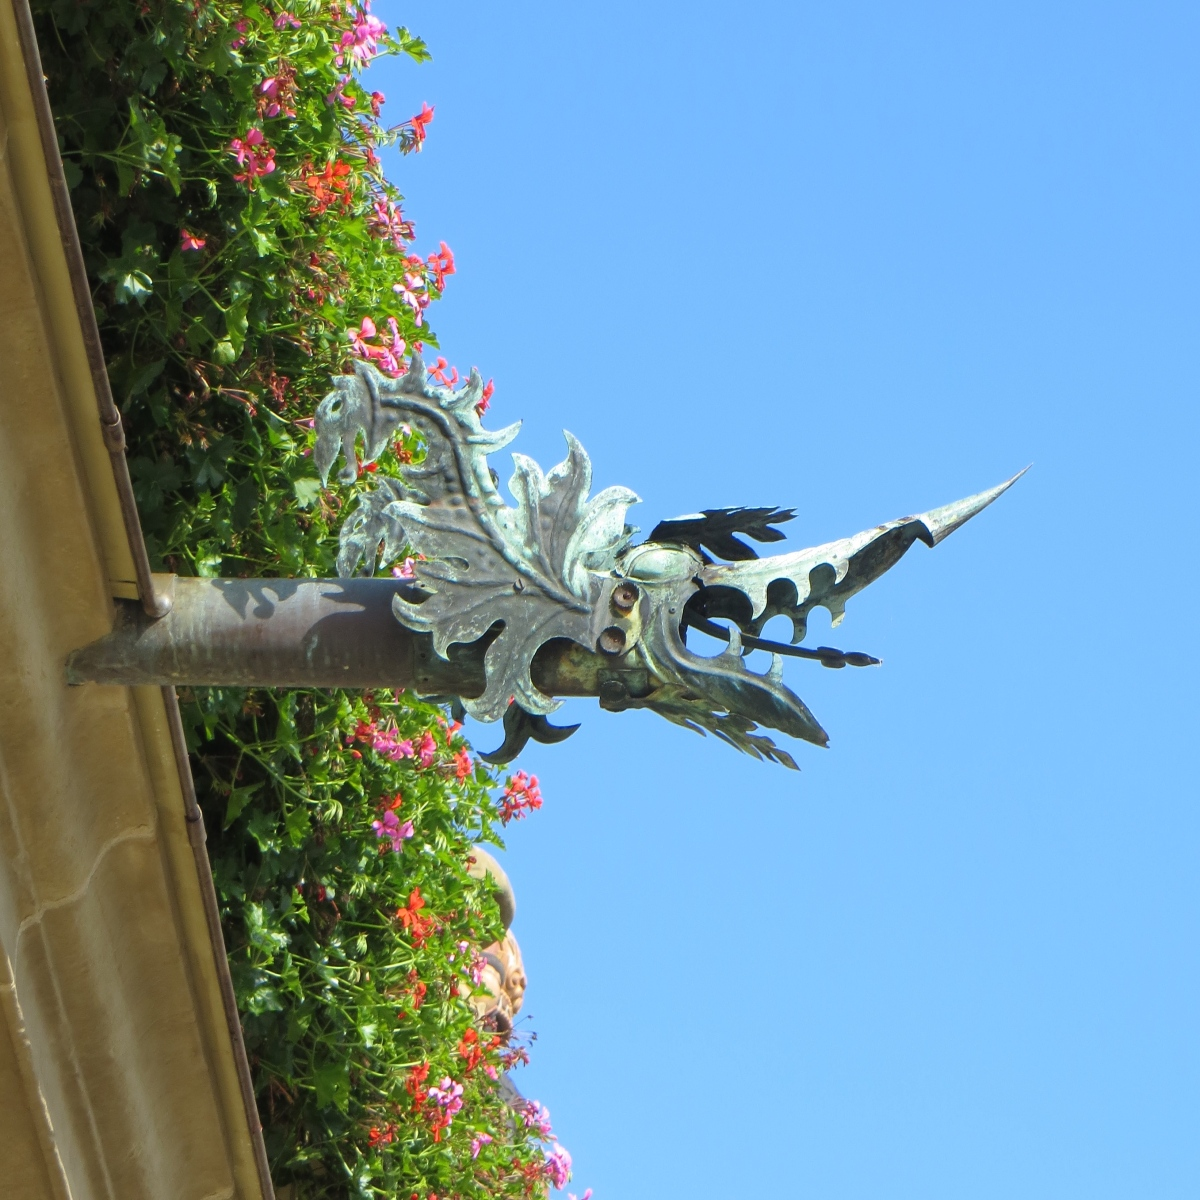 Gurgling Gargoyles: Artfully Draining Water